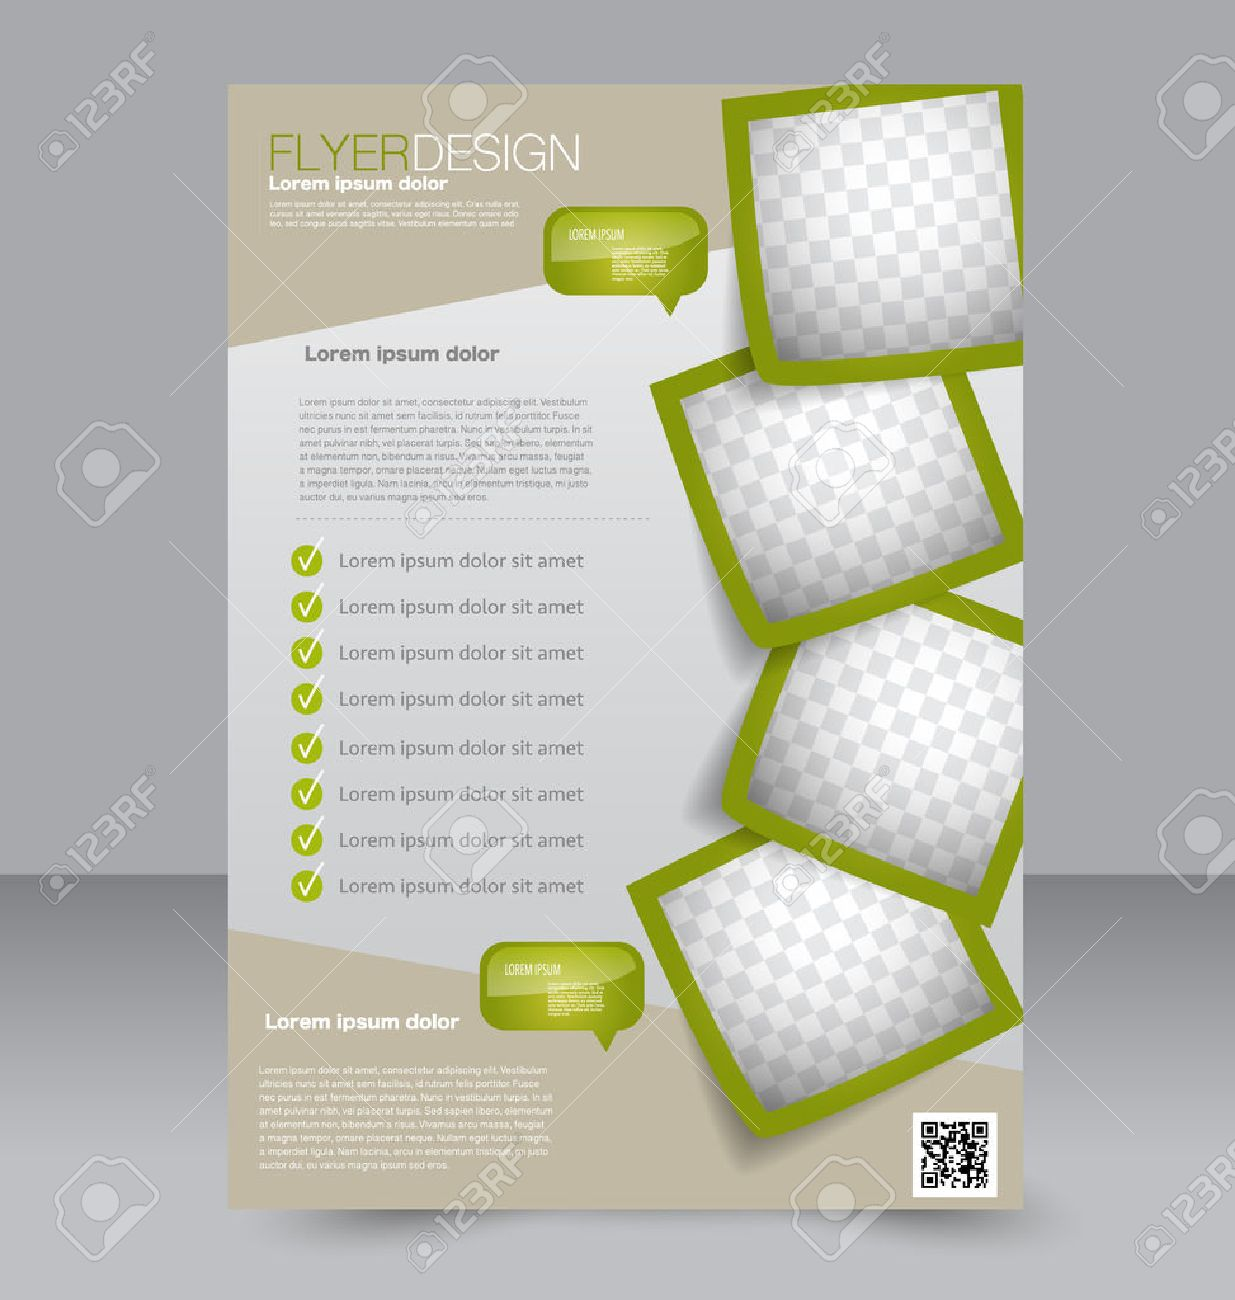 Poster design business - Brochure Design Editable A4 Poster For Business Education Presentation